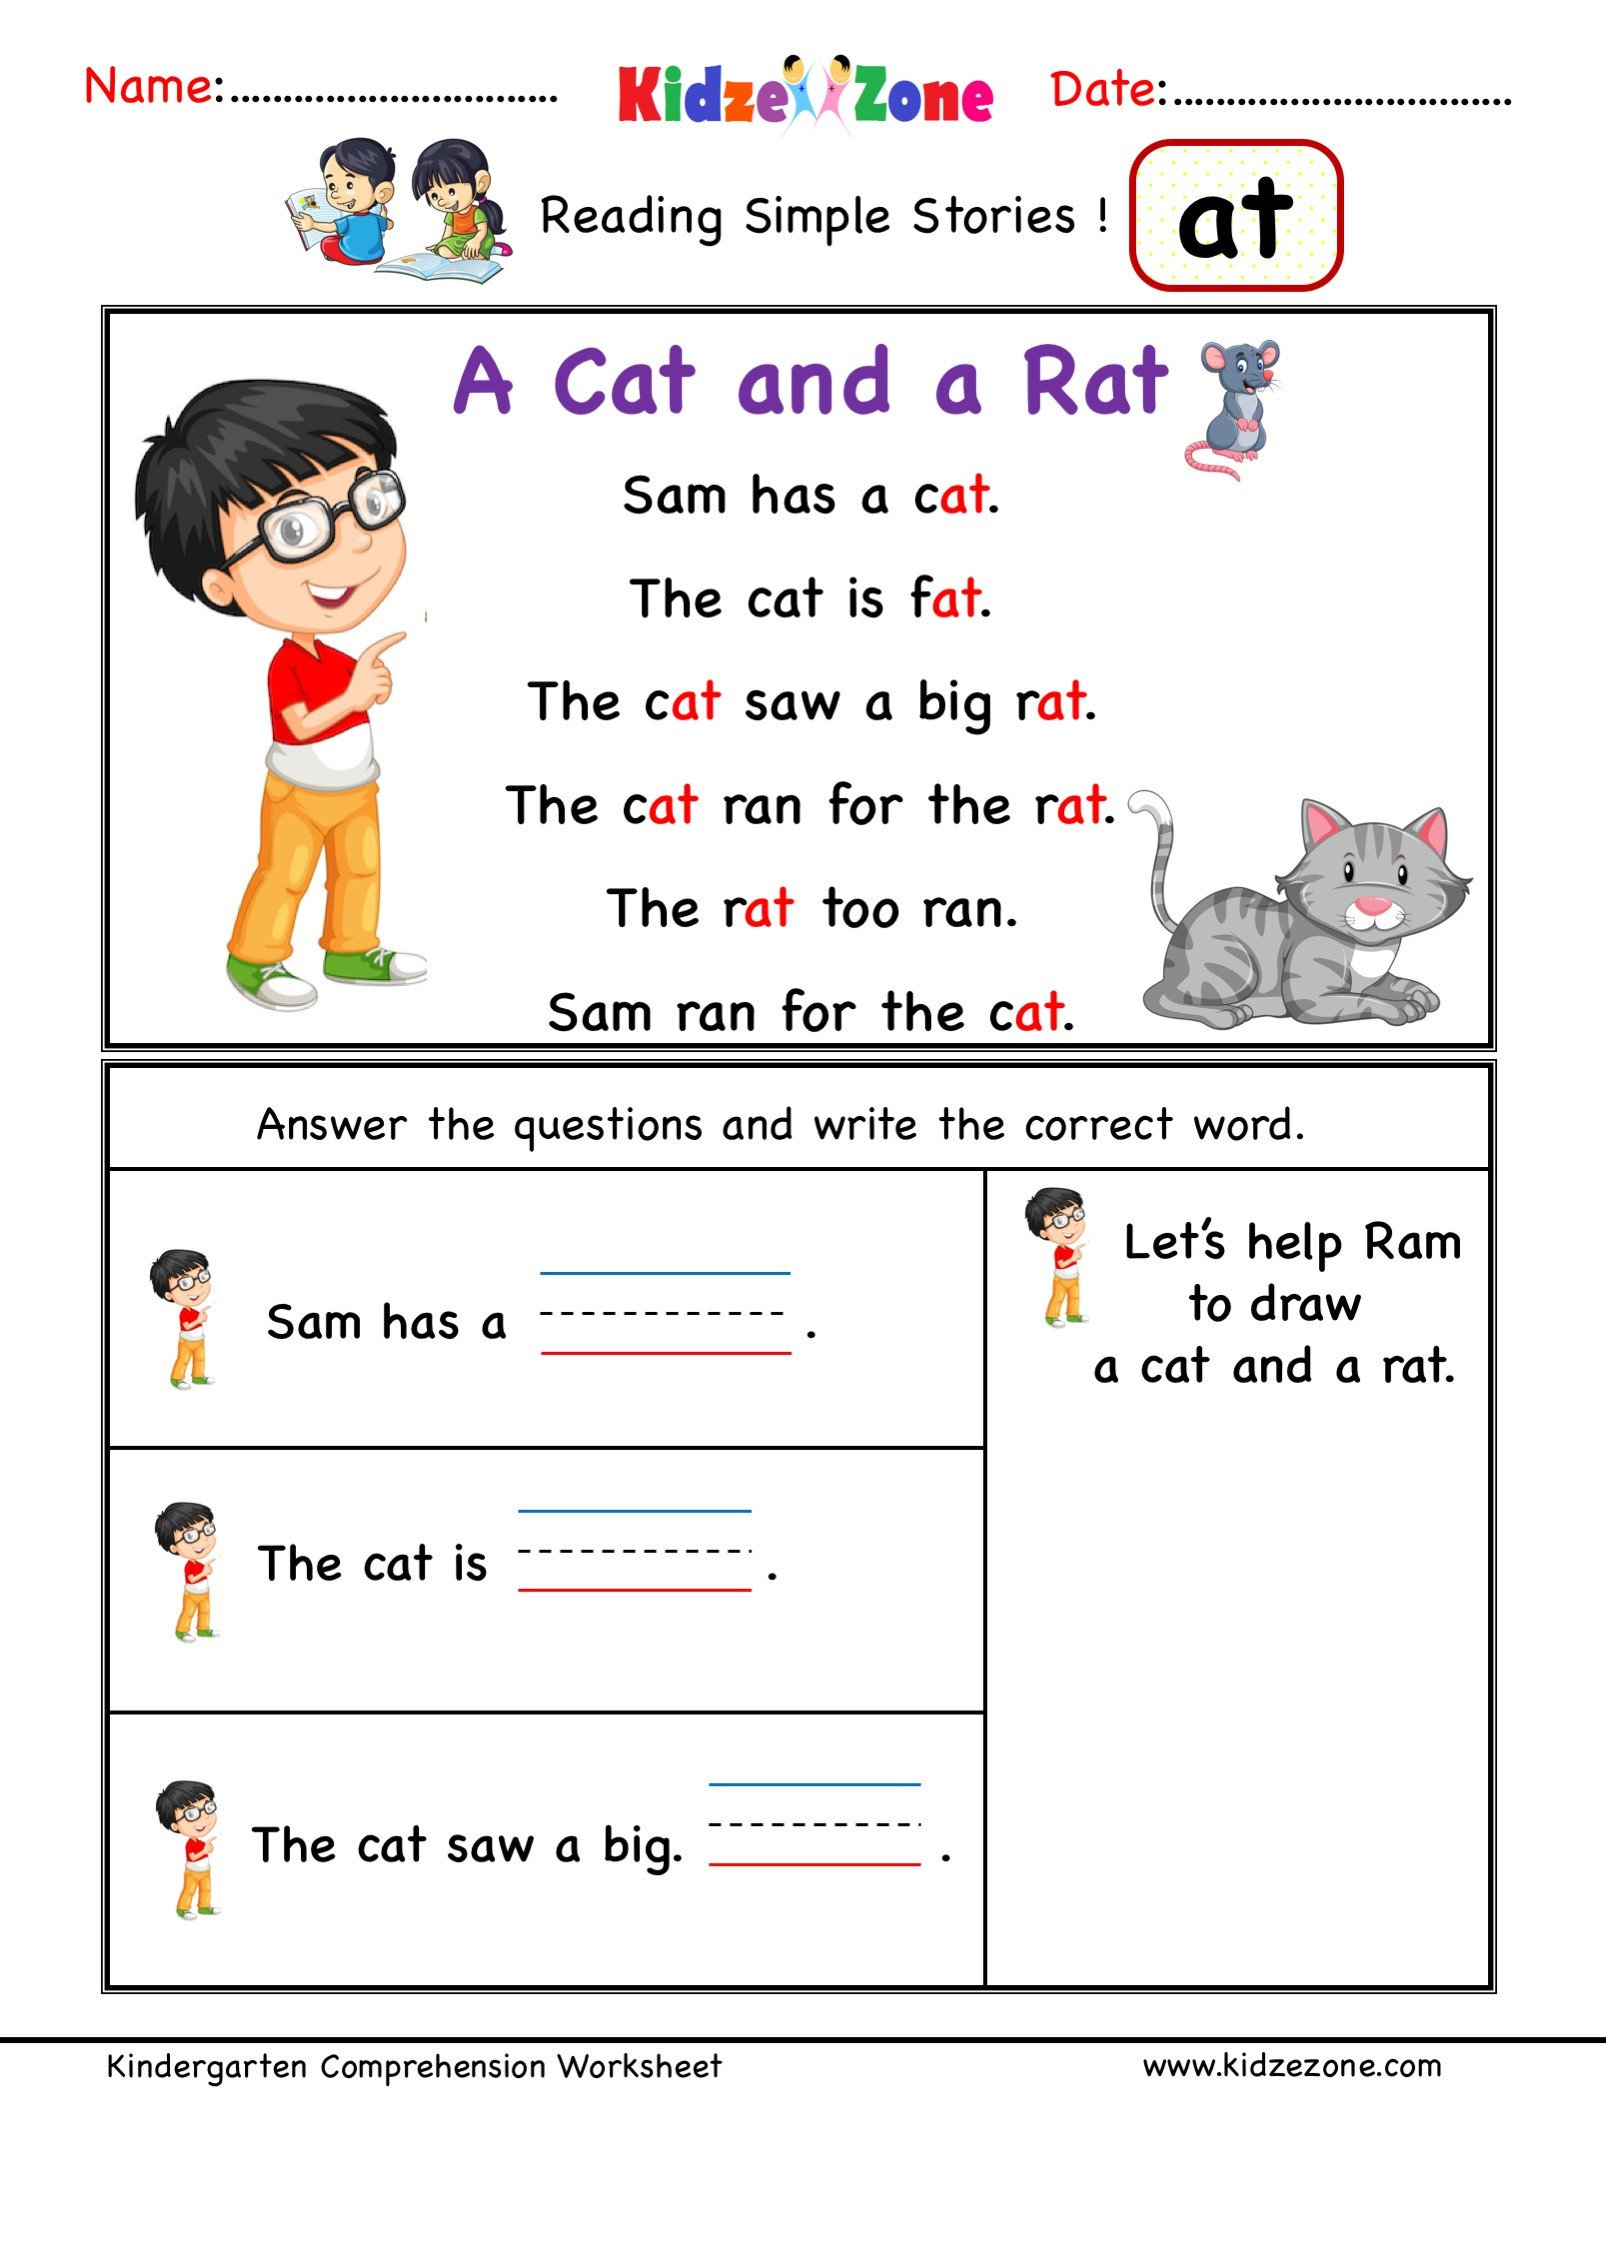 Ccvc Words Worksheets Kindergarten Kindergarten Worksheets at Word Family Reading Prehension